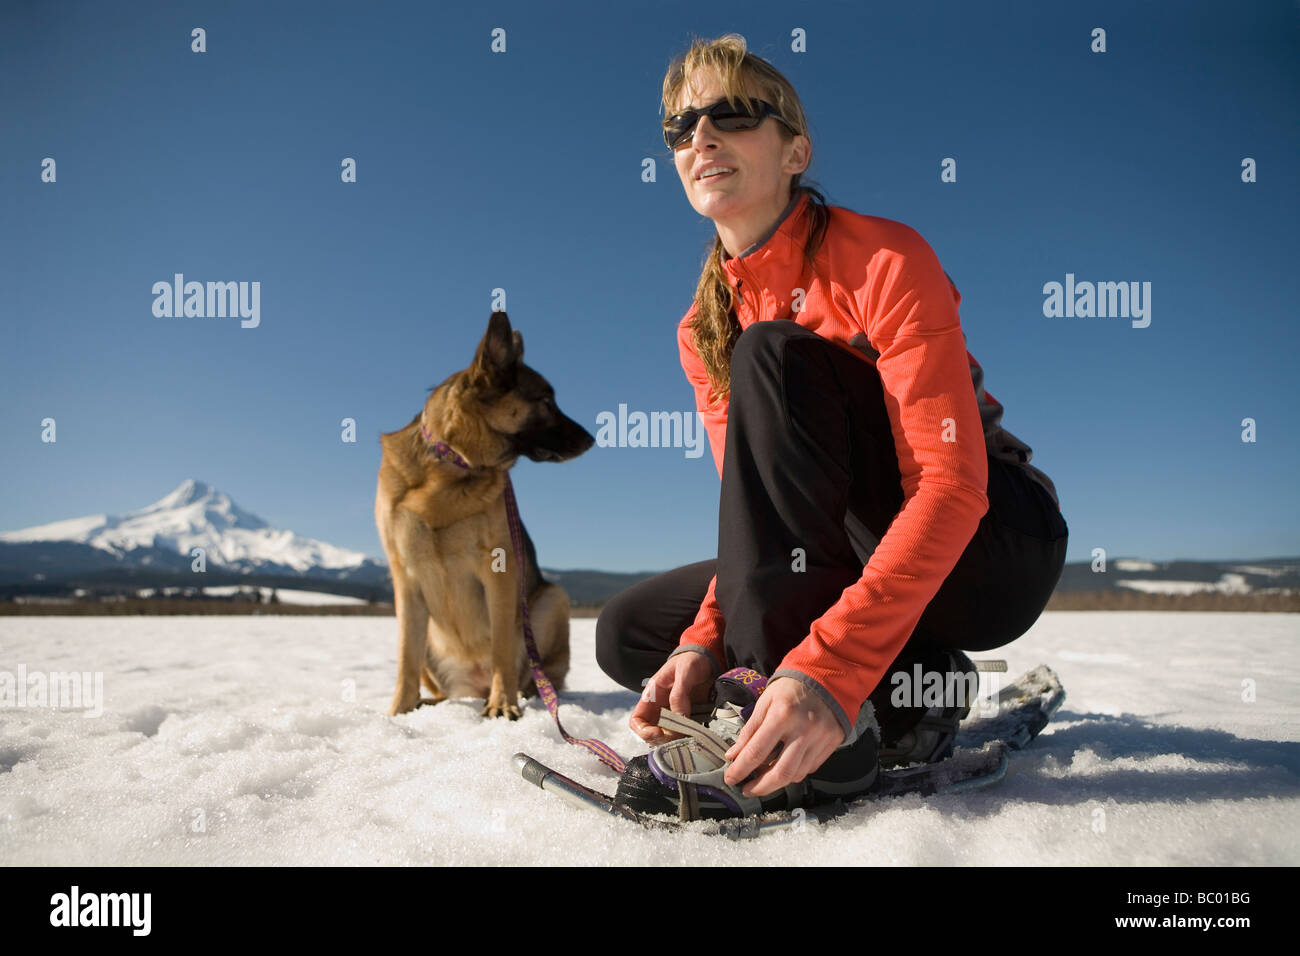 Young woman with dog puts on snowshoes near Mt. Hood, Oregon. - Stock Image